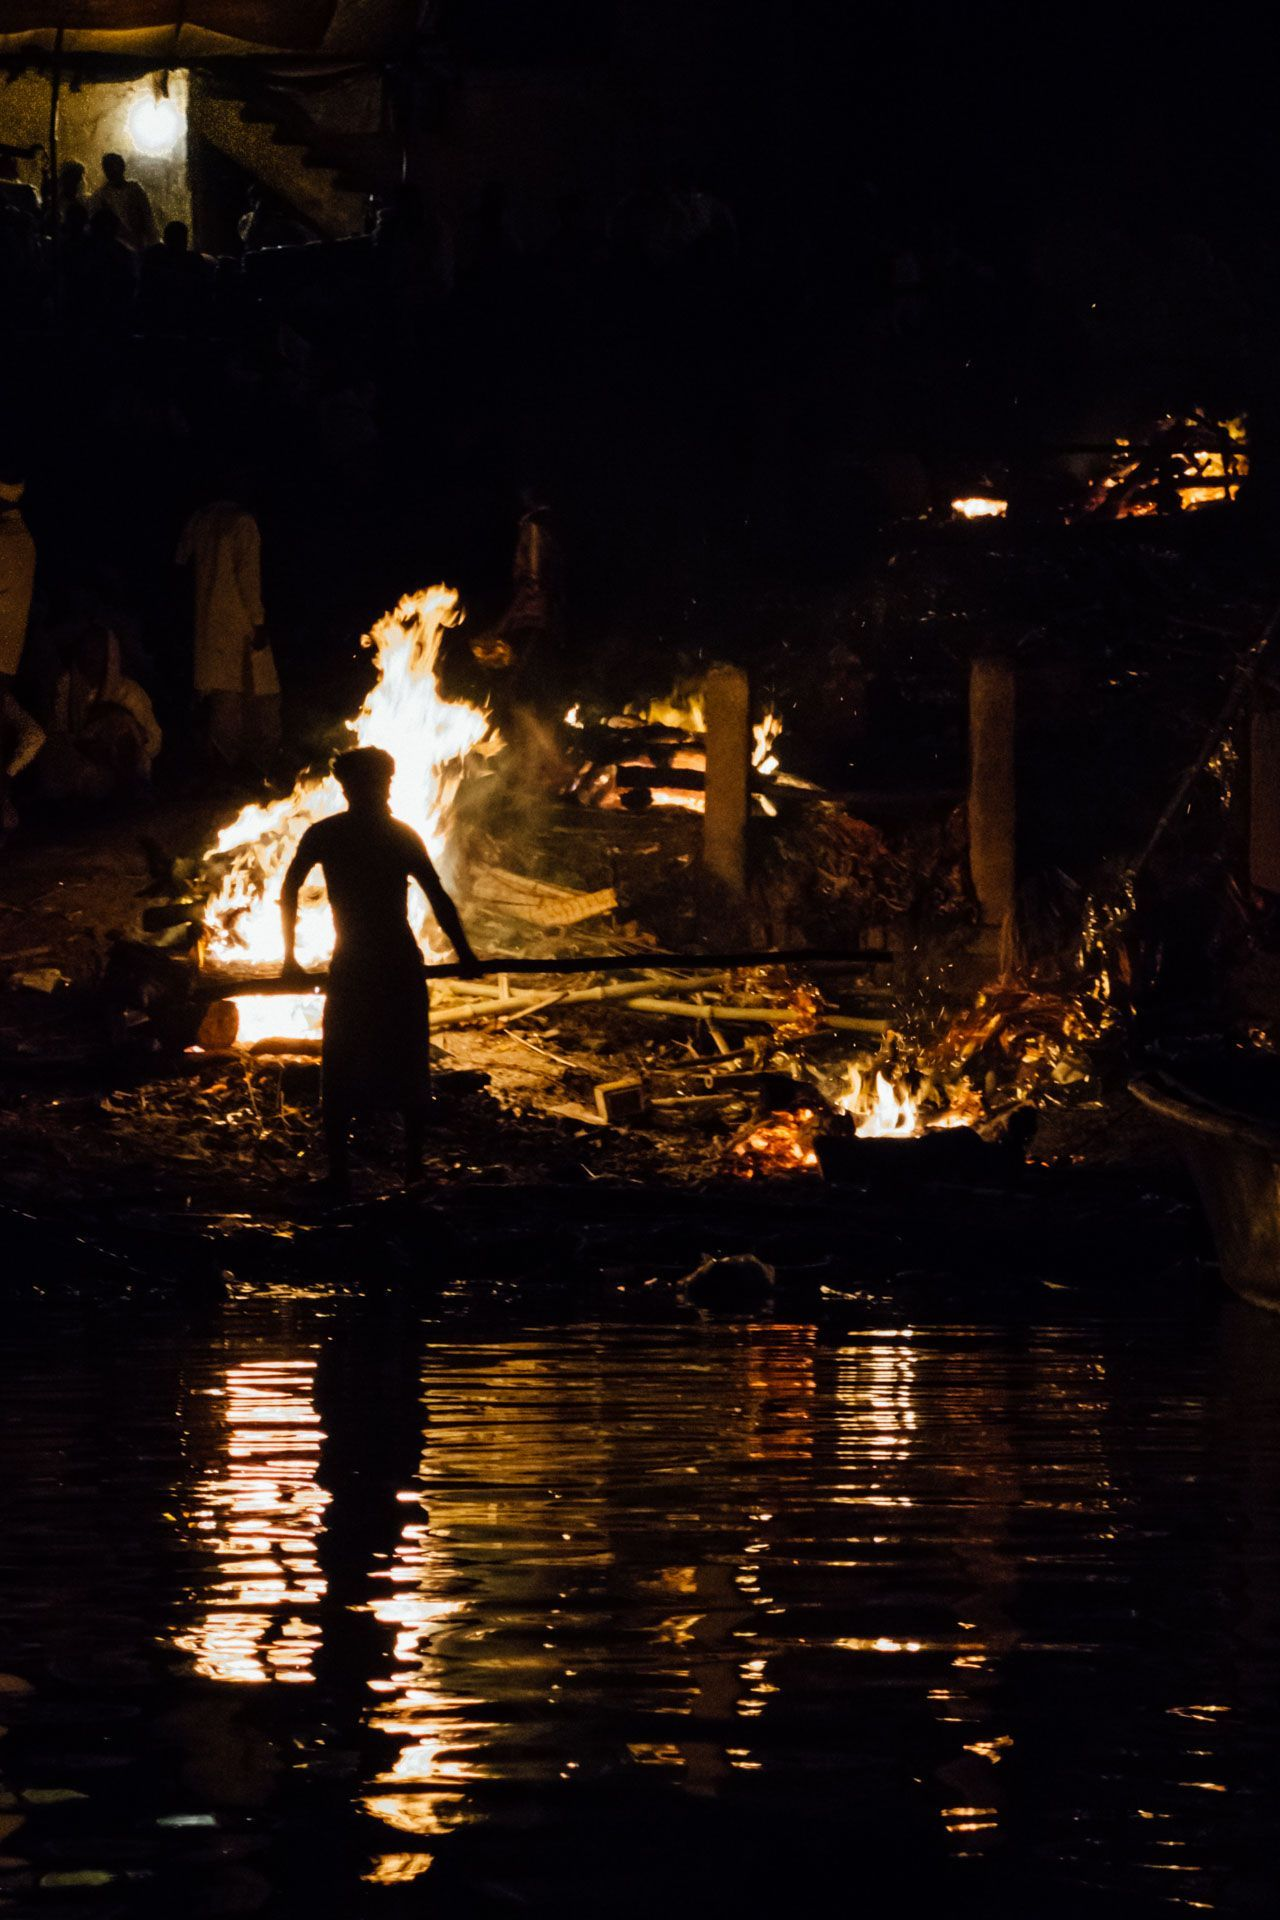 Burning ritual on the Ganges River in Varanasi India